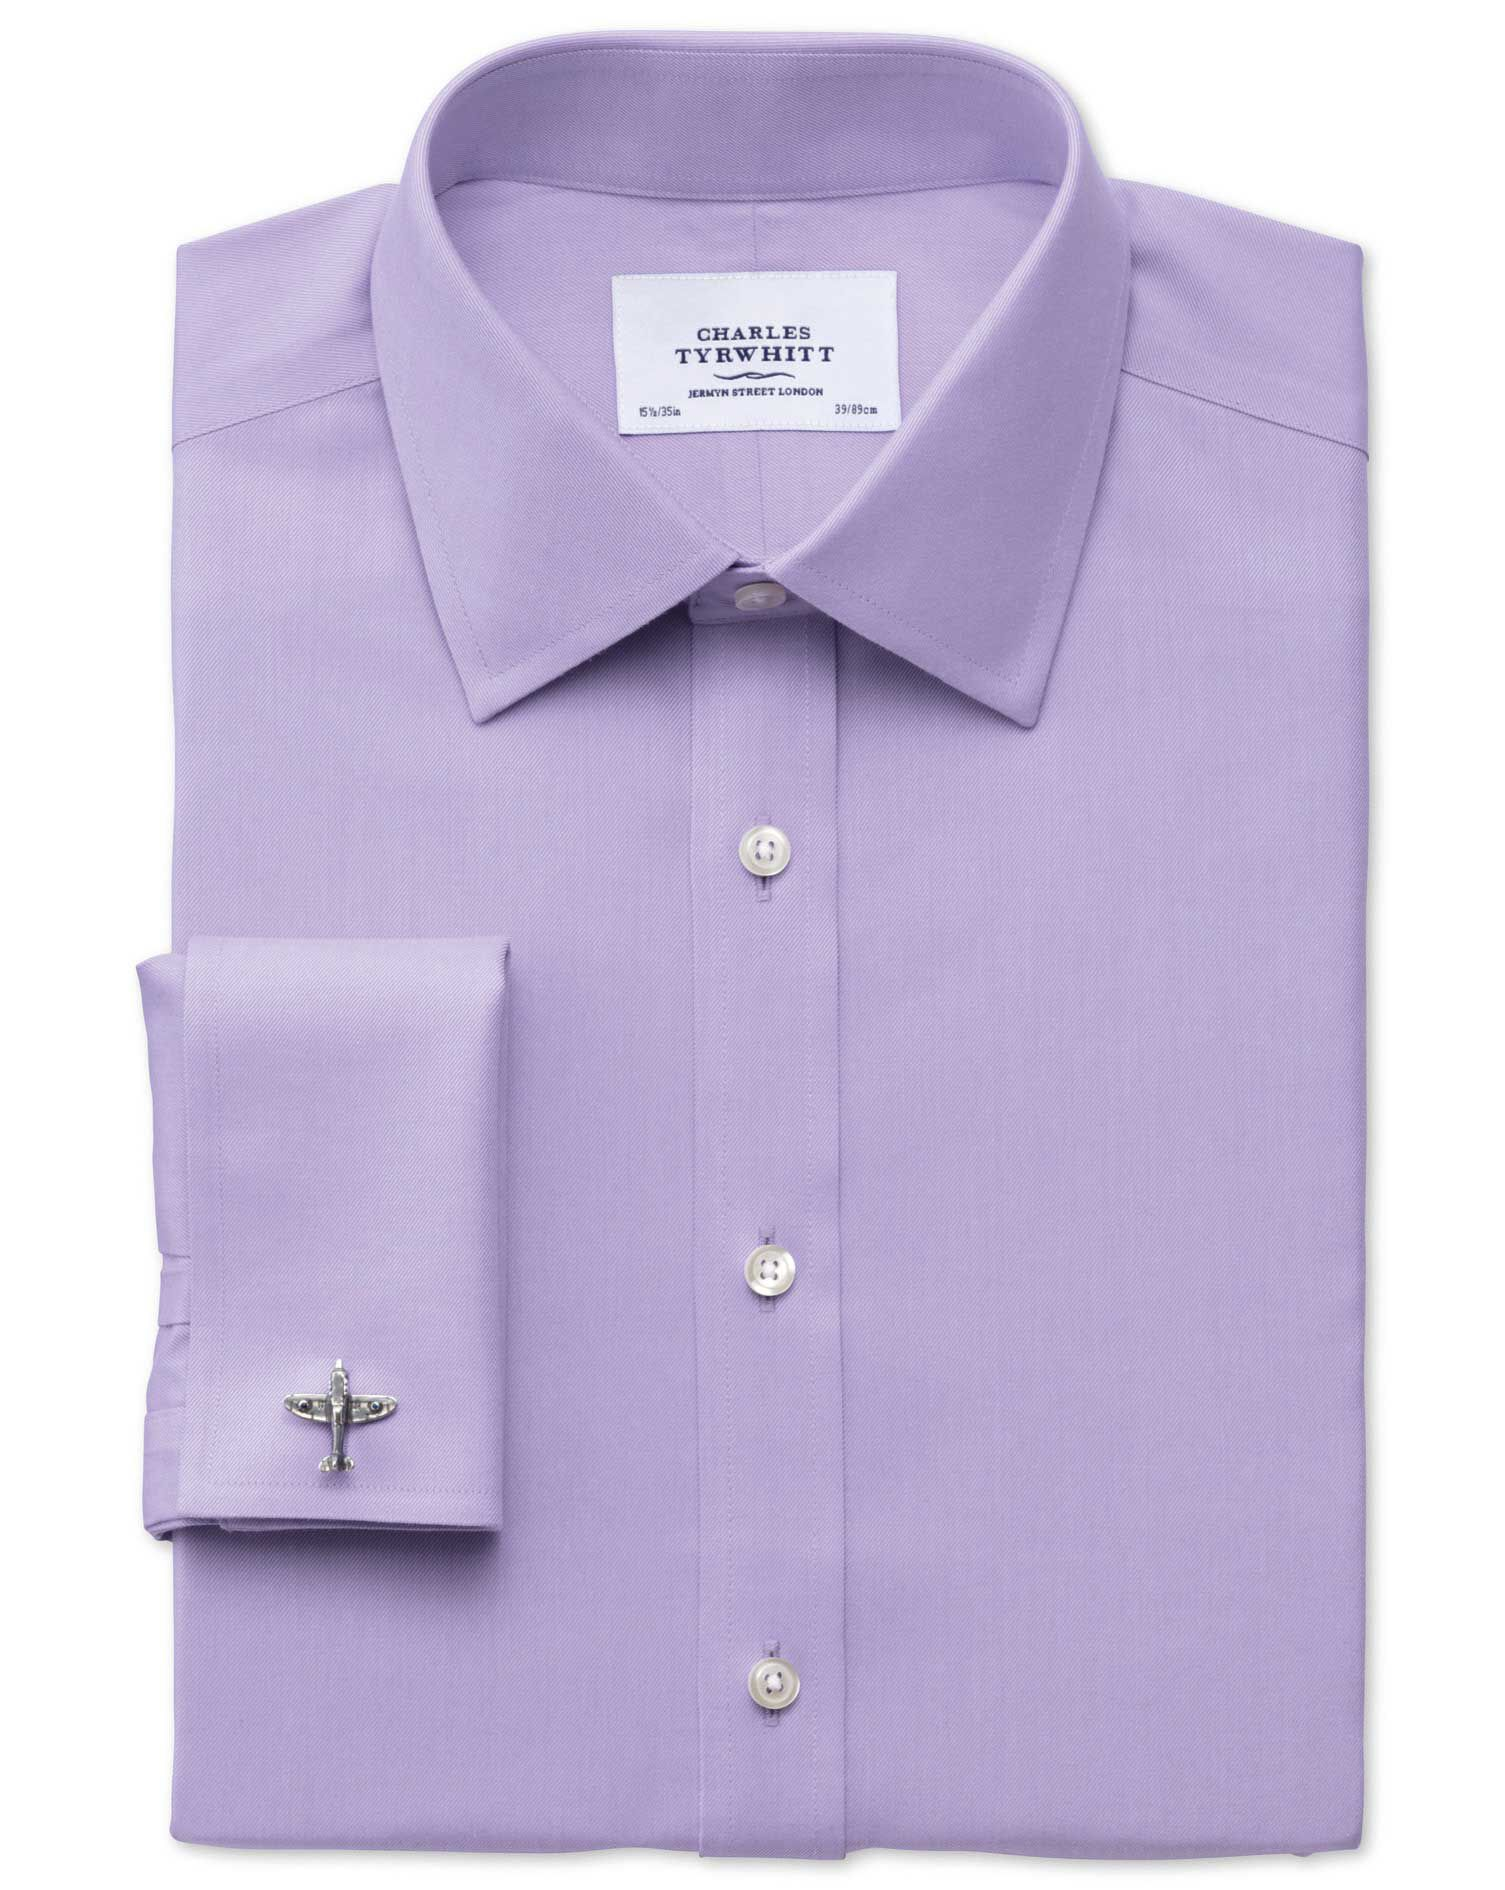 Slim Fit Non-Iron Twill Lilac Cotton Formal Shirt Double Cuff Size 16.5/38 by Charles Tyrwhitt